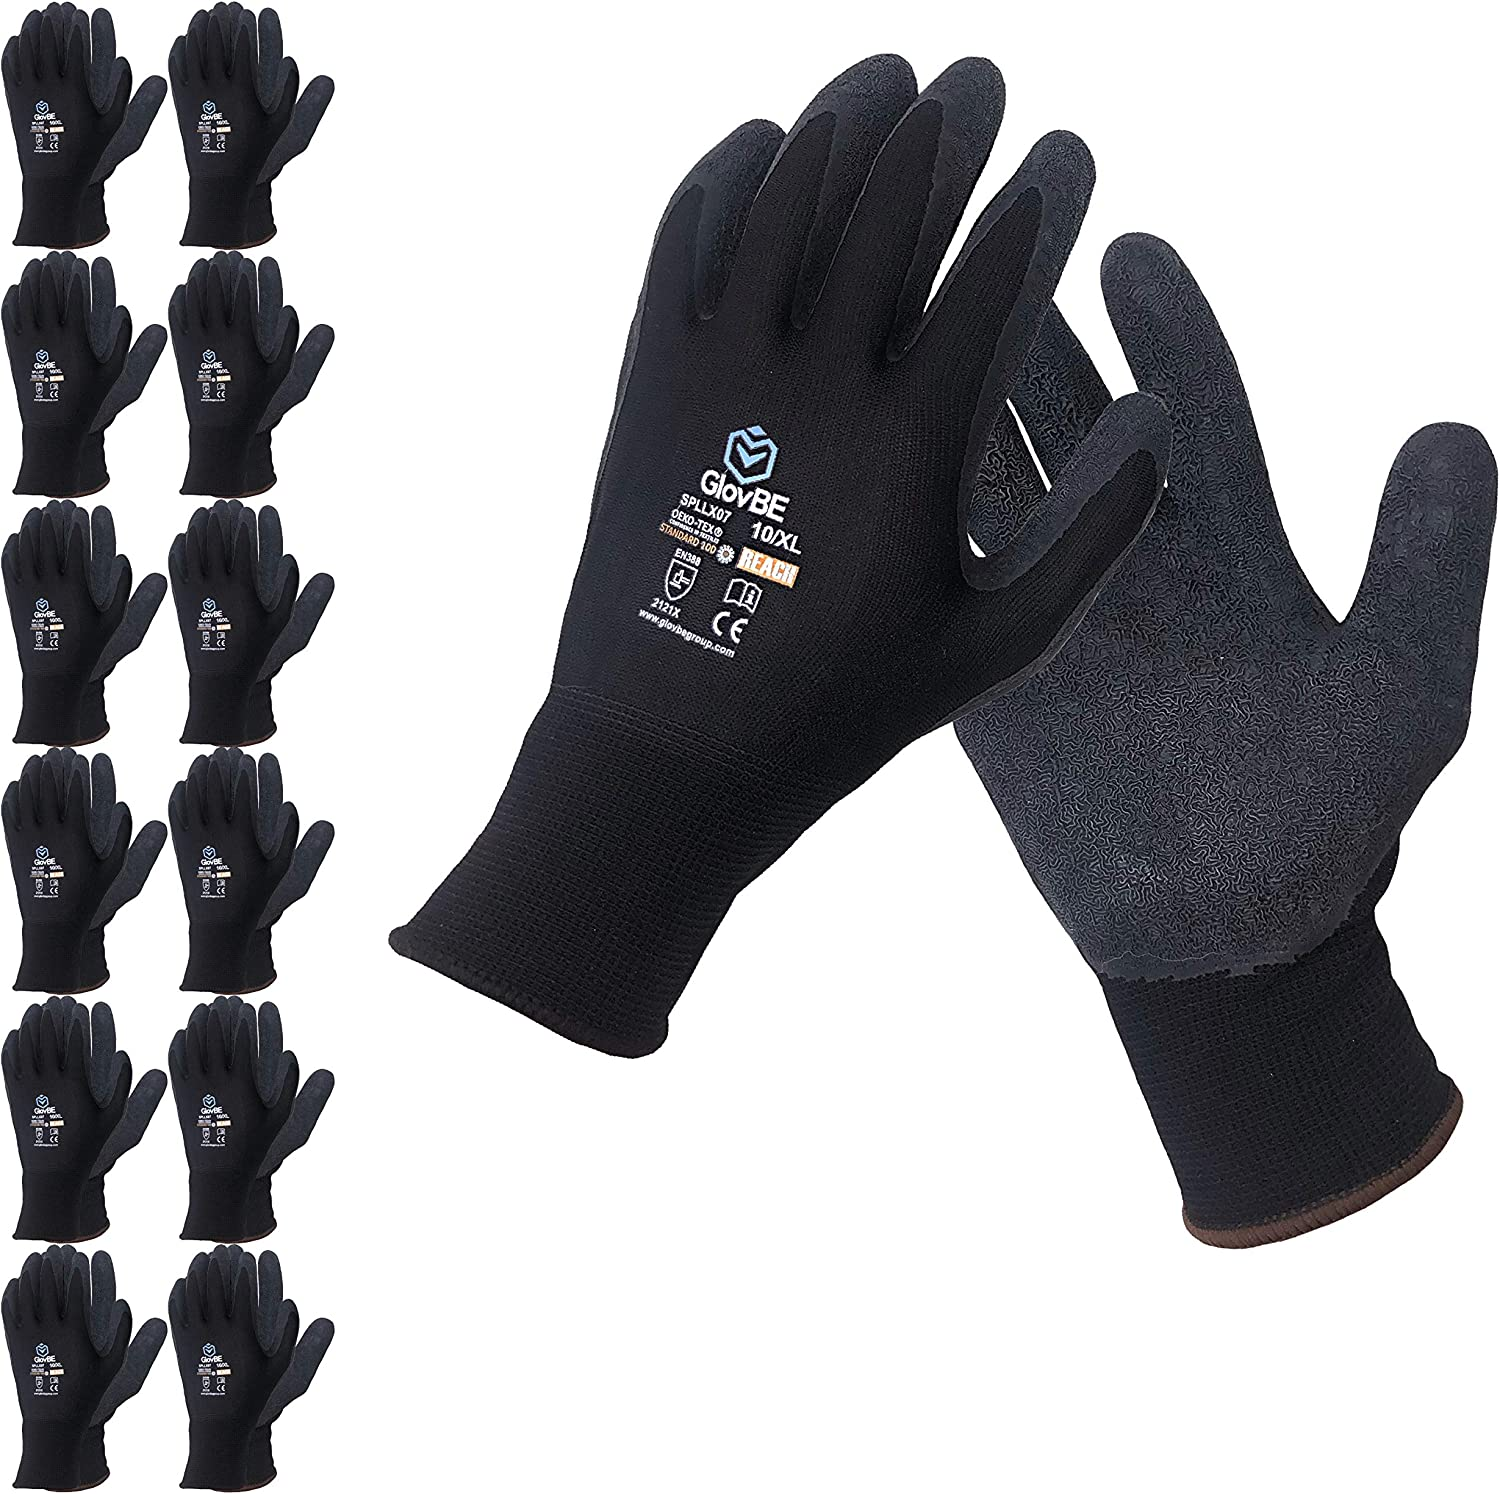 GlovBE 12 Pairs Grip All-Purpose Work Sale special price Latex with P Coated Gloves shipfree